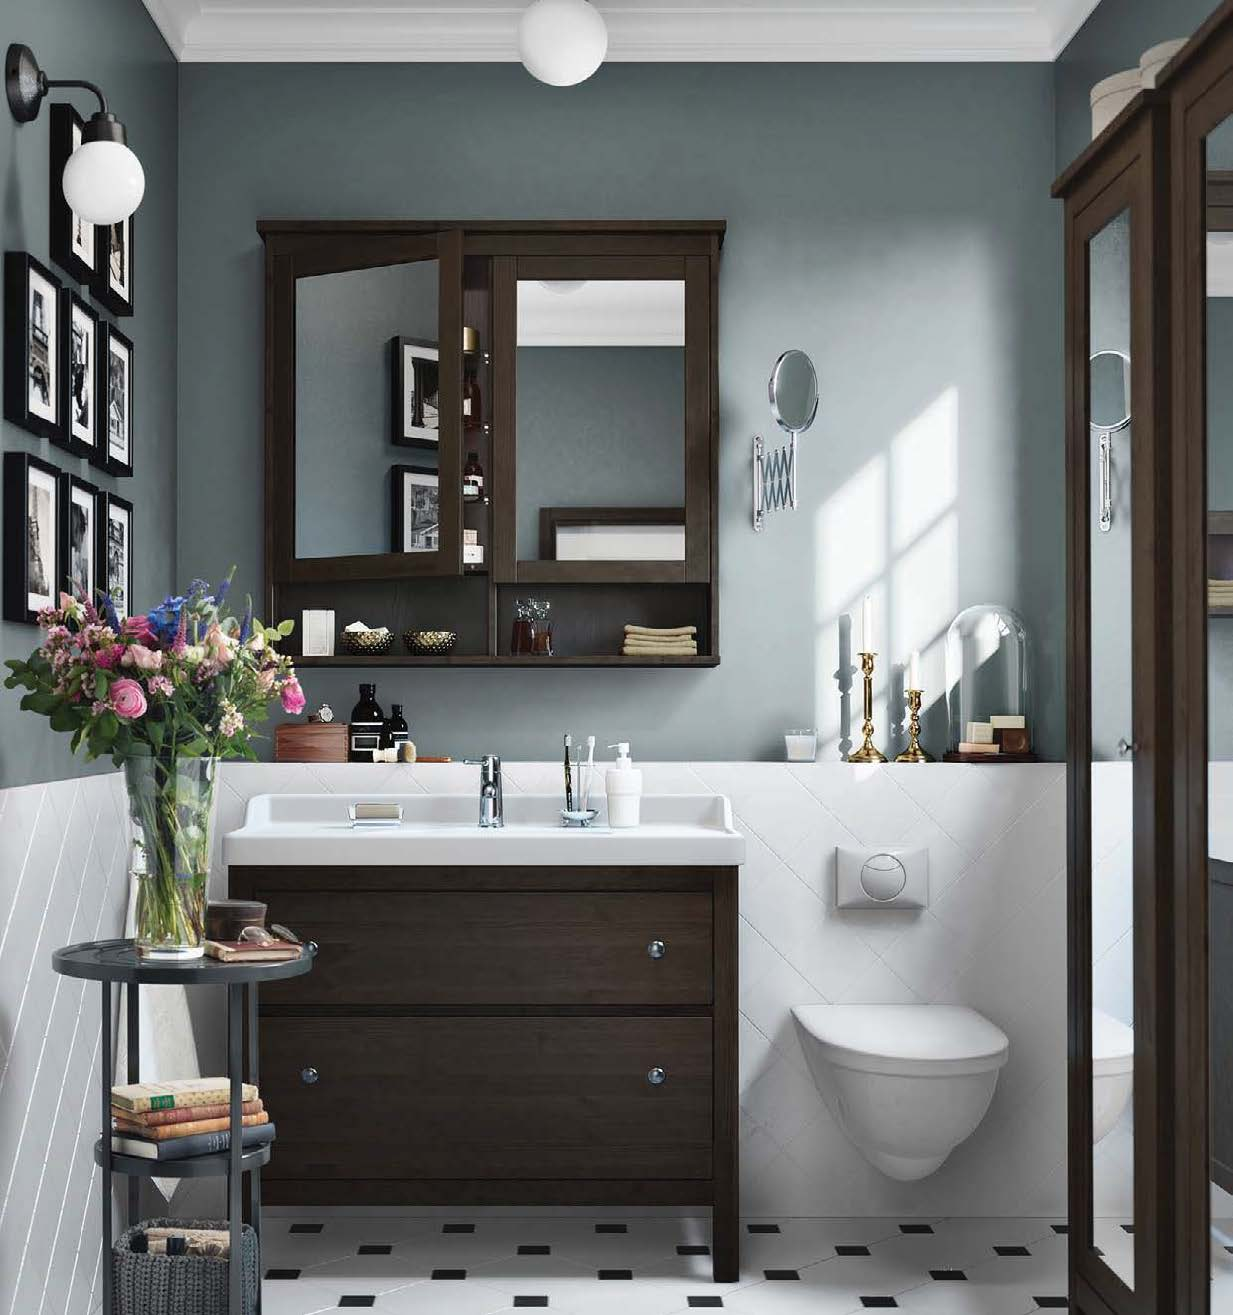 Ikea 2016 catalog for Bathroom styles 2016